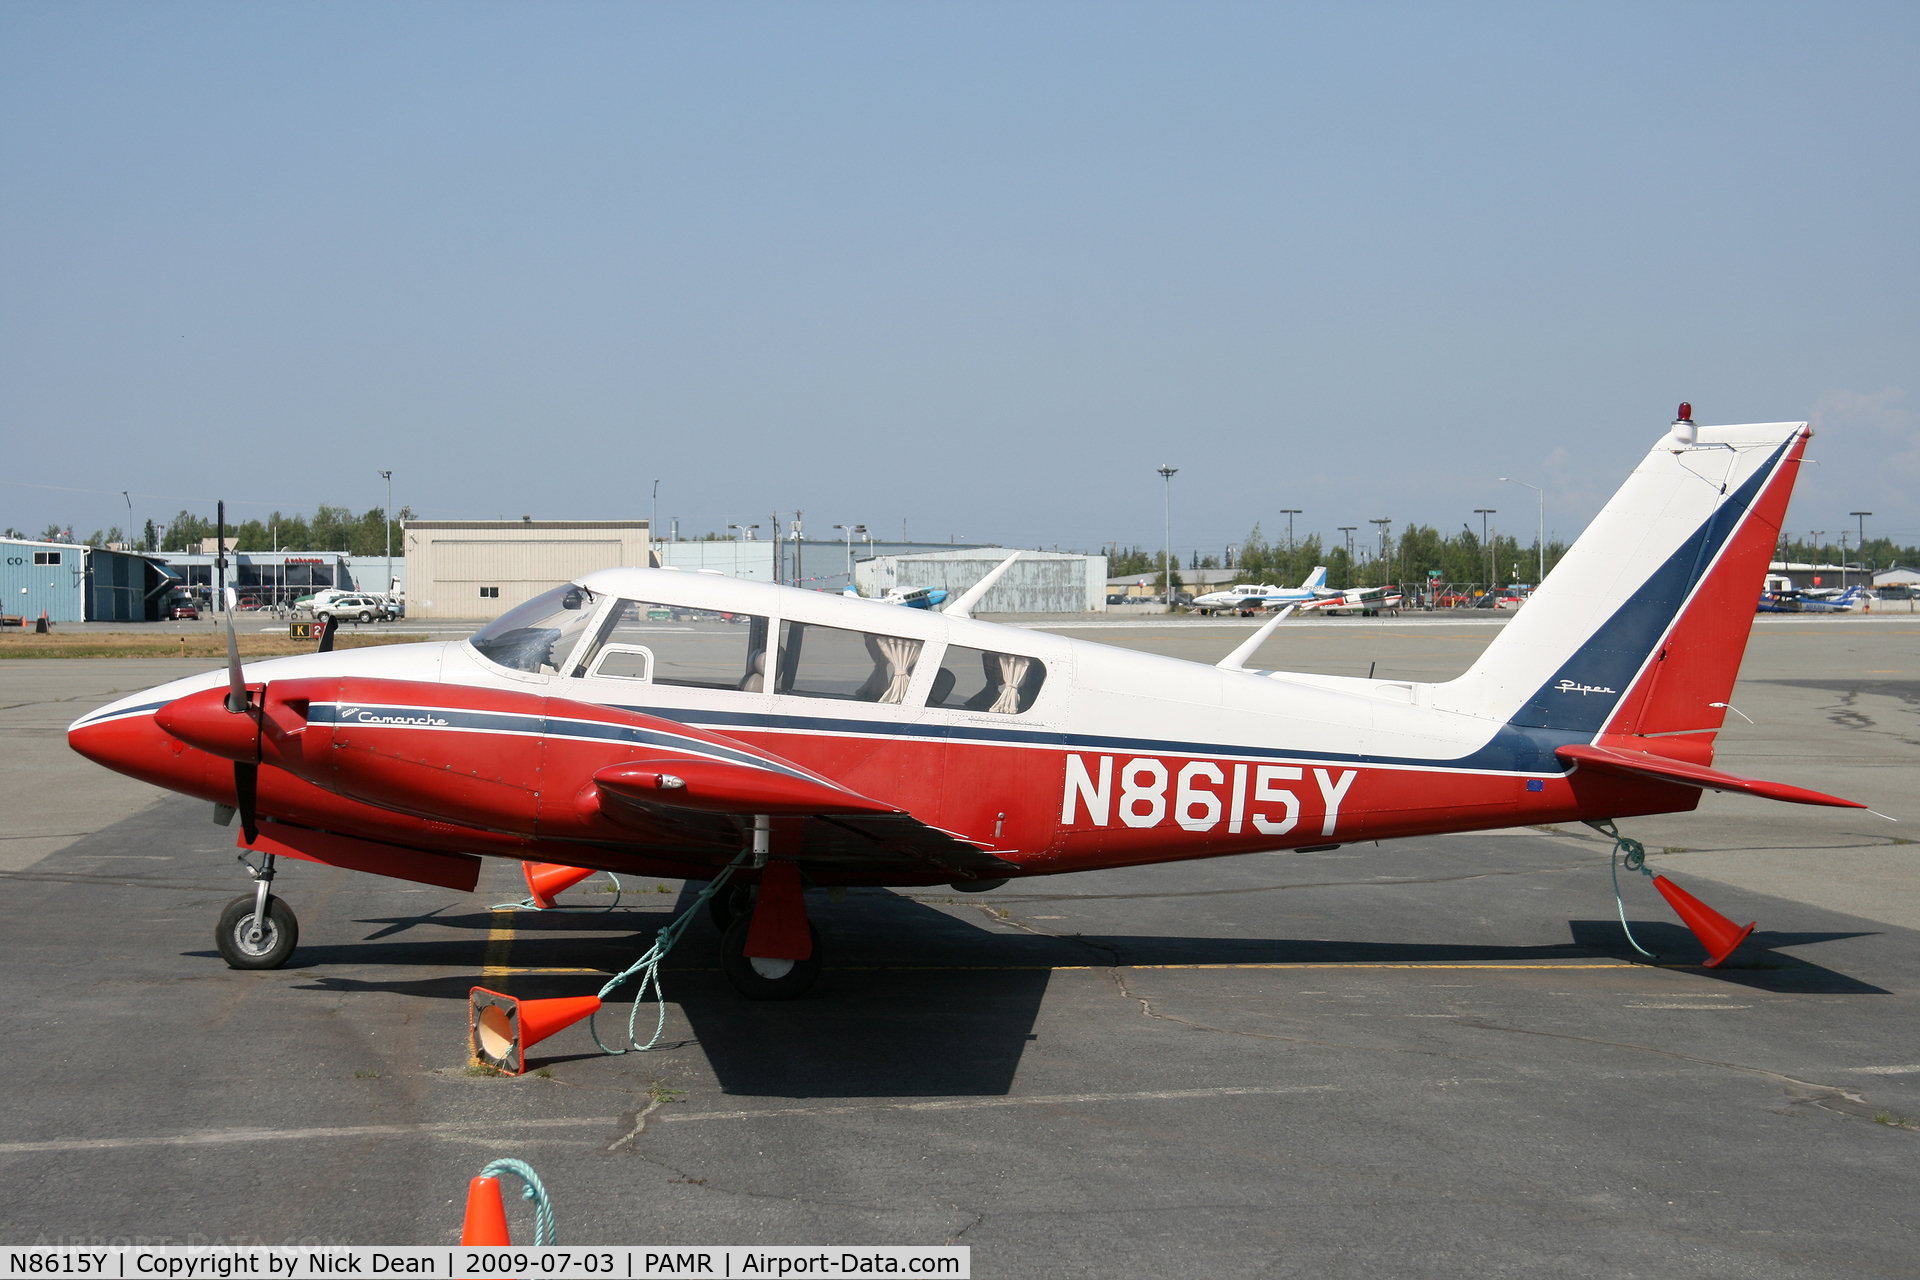 N8615Y, 1968 Piper PA-30-160 Twin Comanche C/N 30-1755, PAMR